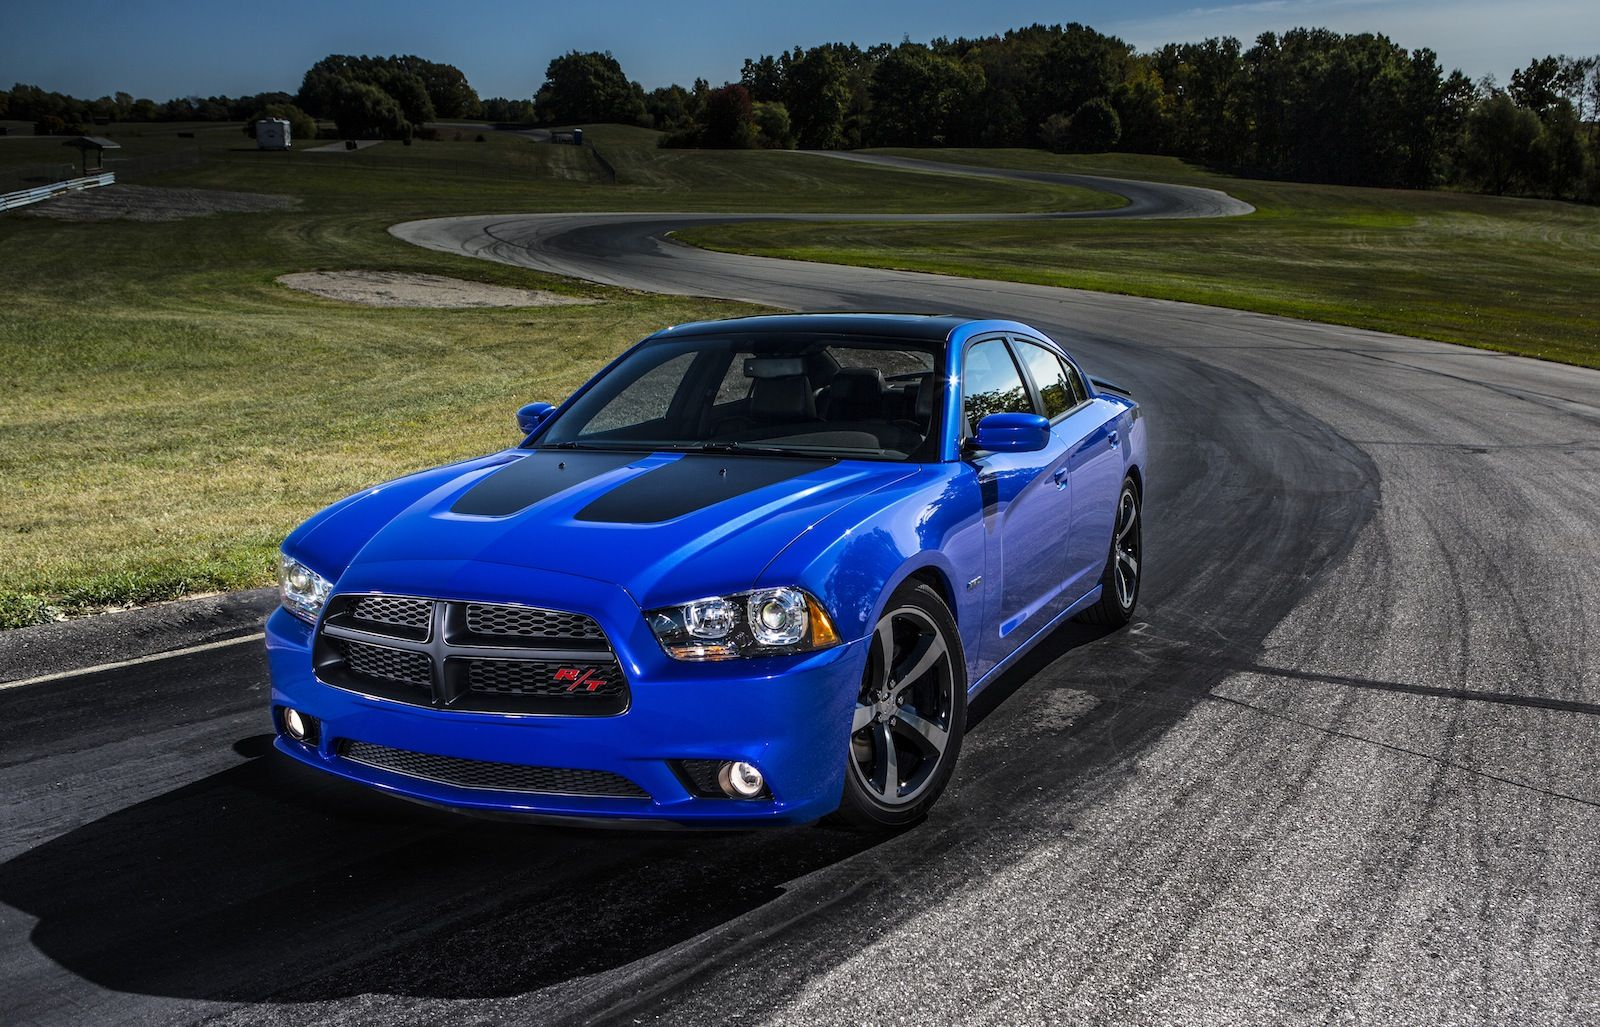 Dodge charger daytona 2013 limited to packs hemi and stripes